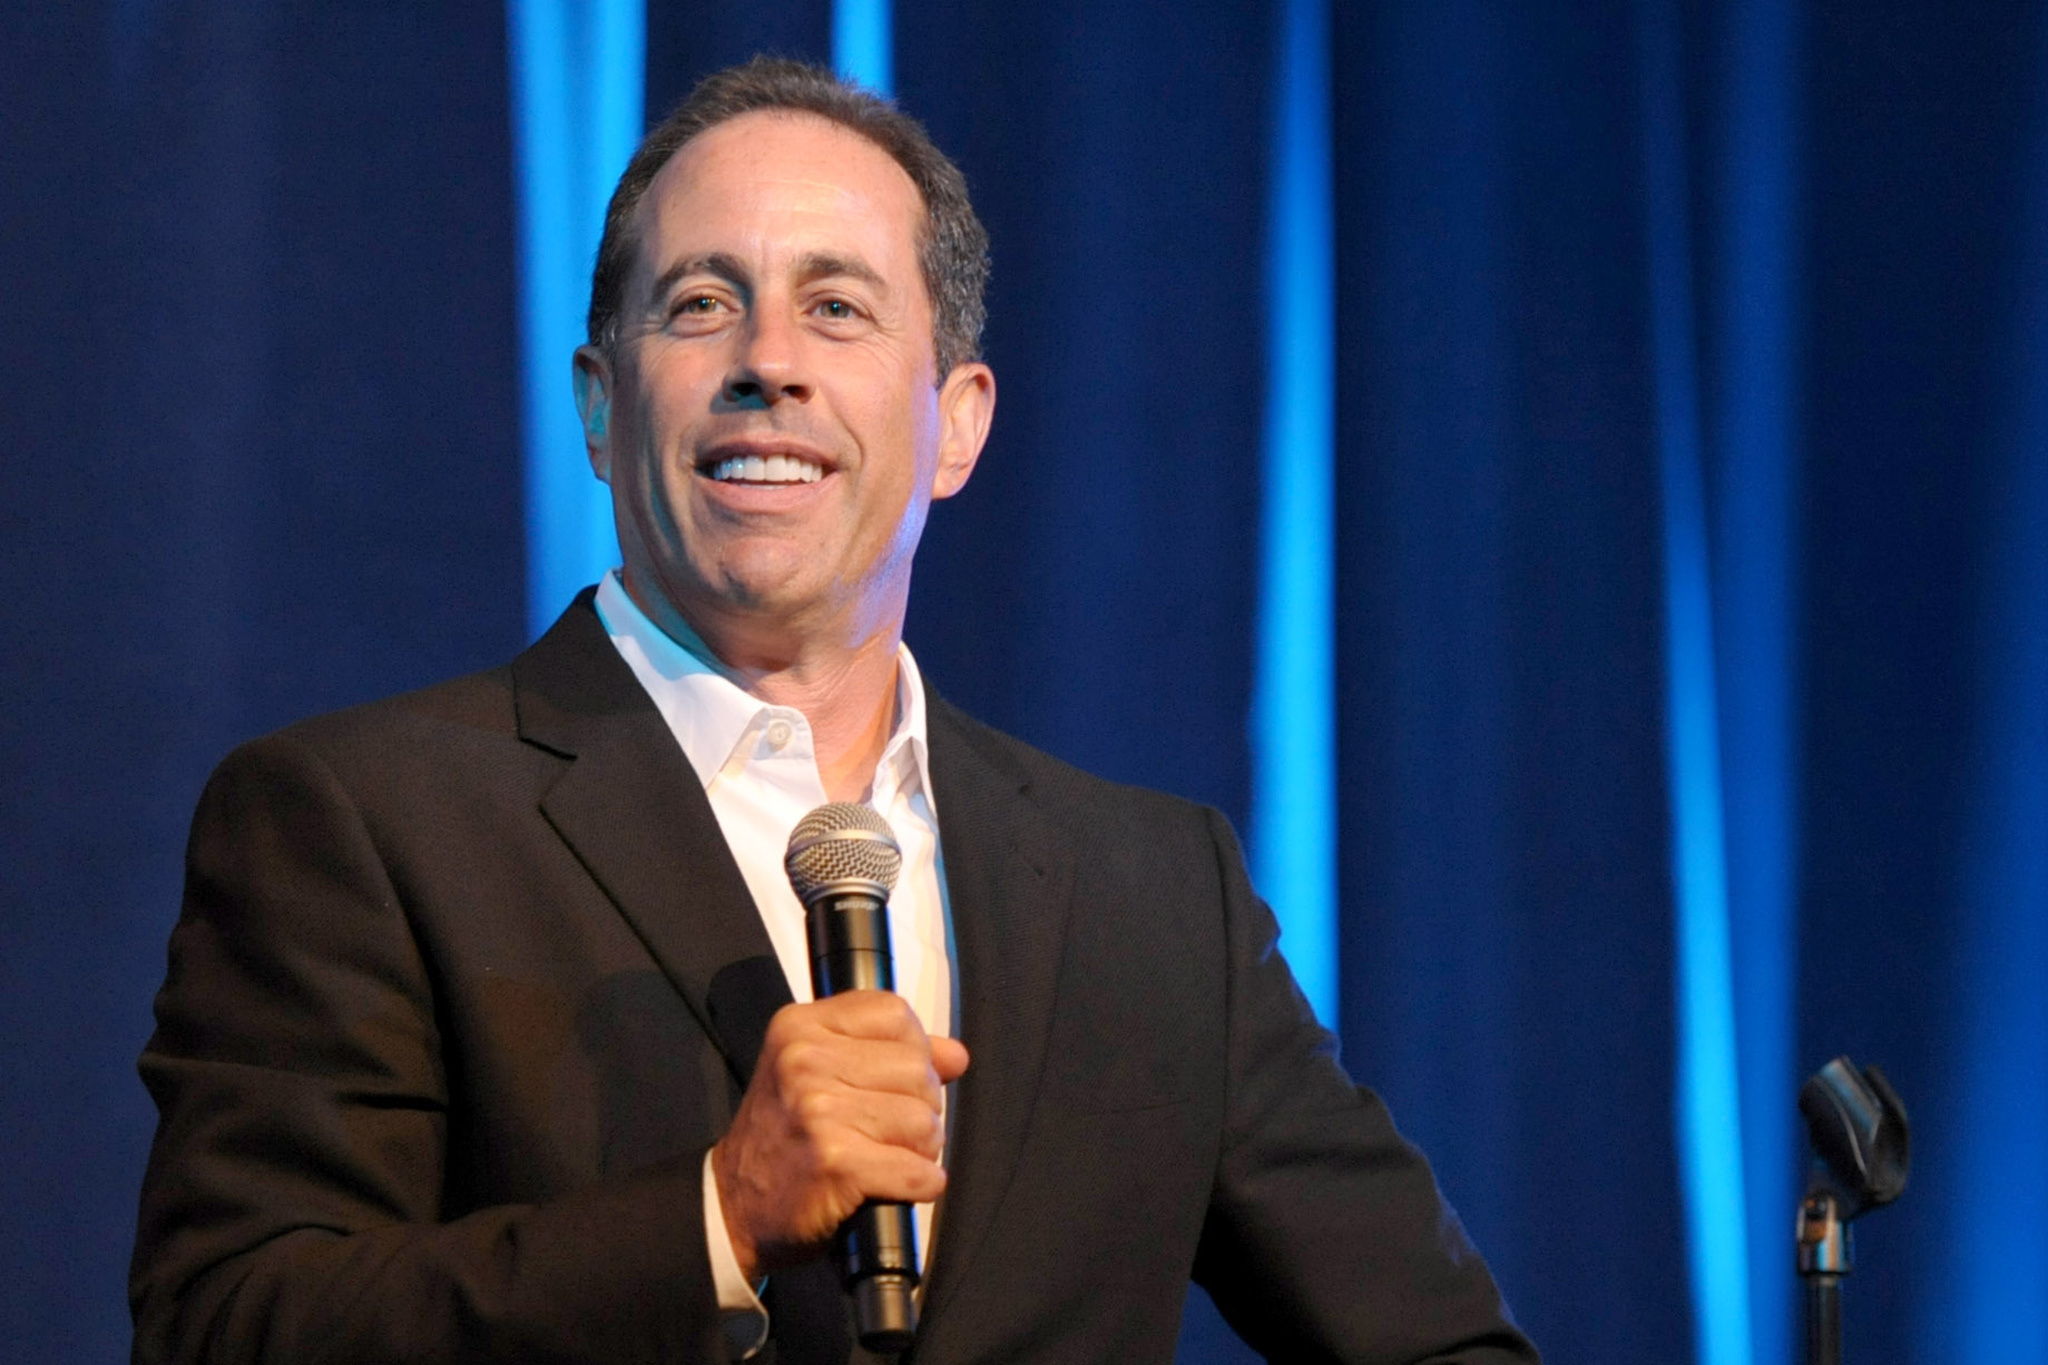 Jerry Seinfeld is bringing his standup show to Australia